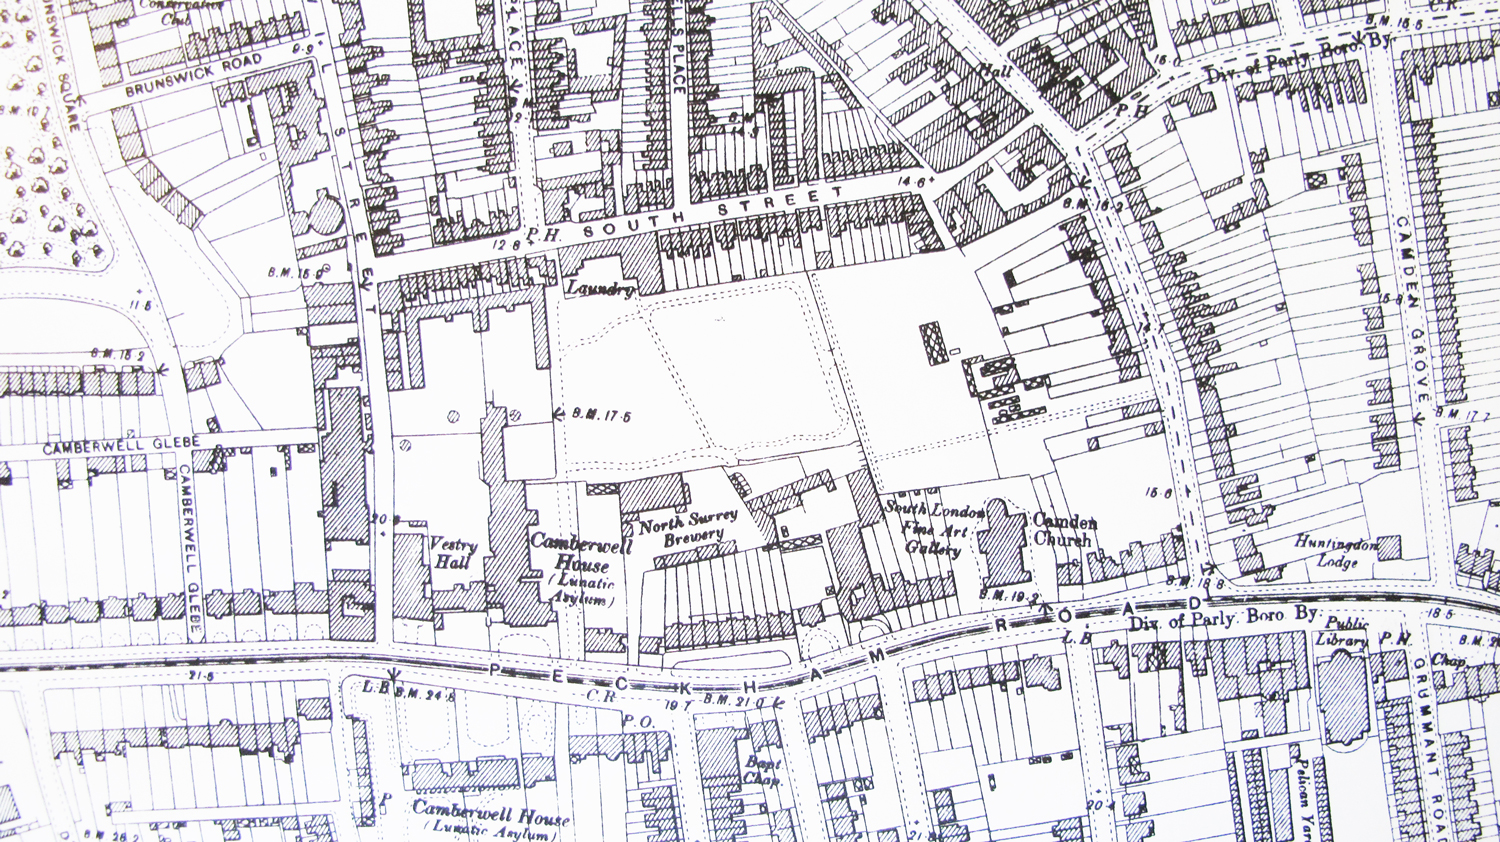 Archival map of Peckham and Camberwell